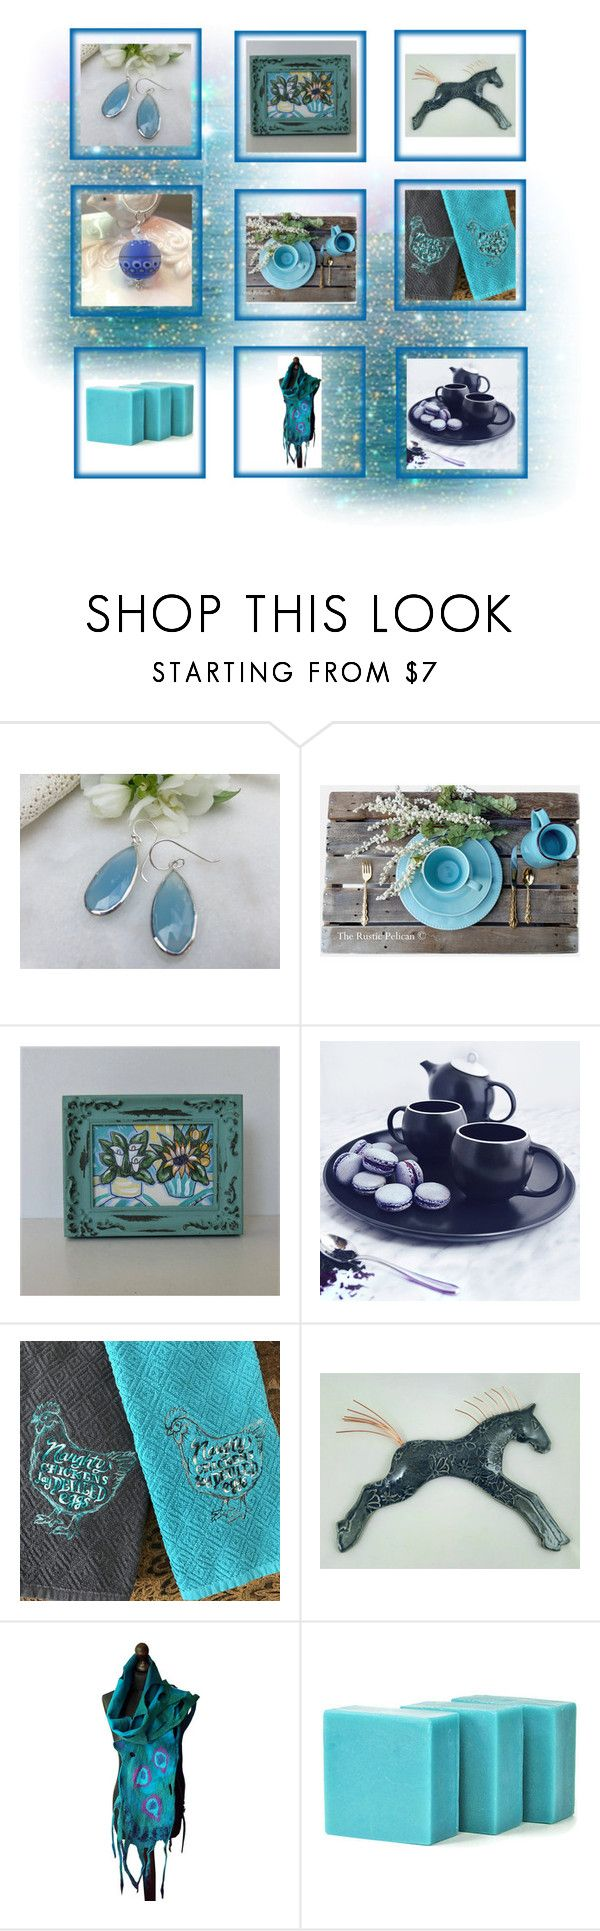 """""""Blue Gifts"""" by keepsakedesignbycmm ❤ liked on Polyvore featuring Rustico, etsy, jewelry, accessories and decor"""